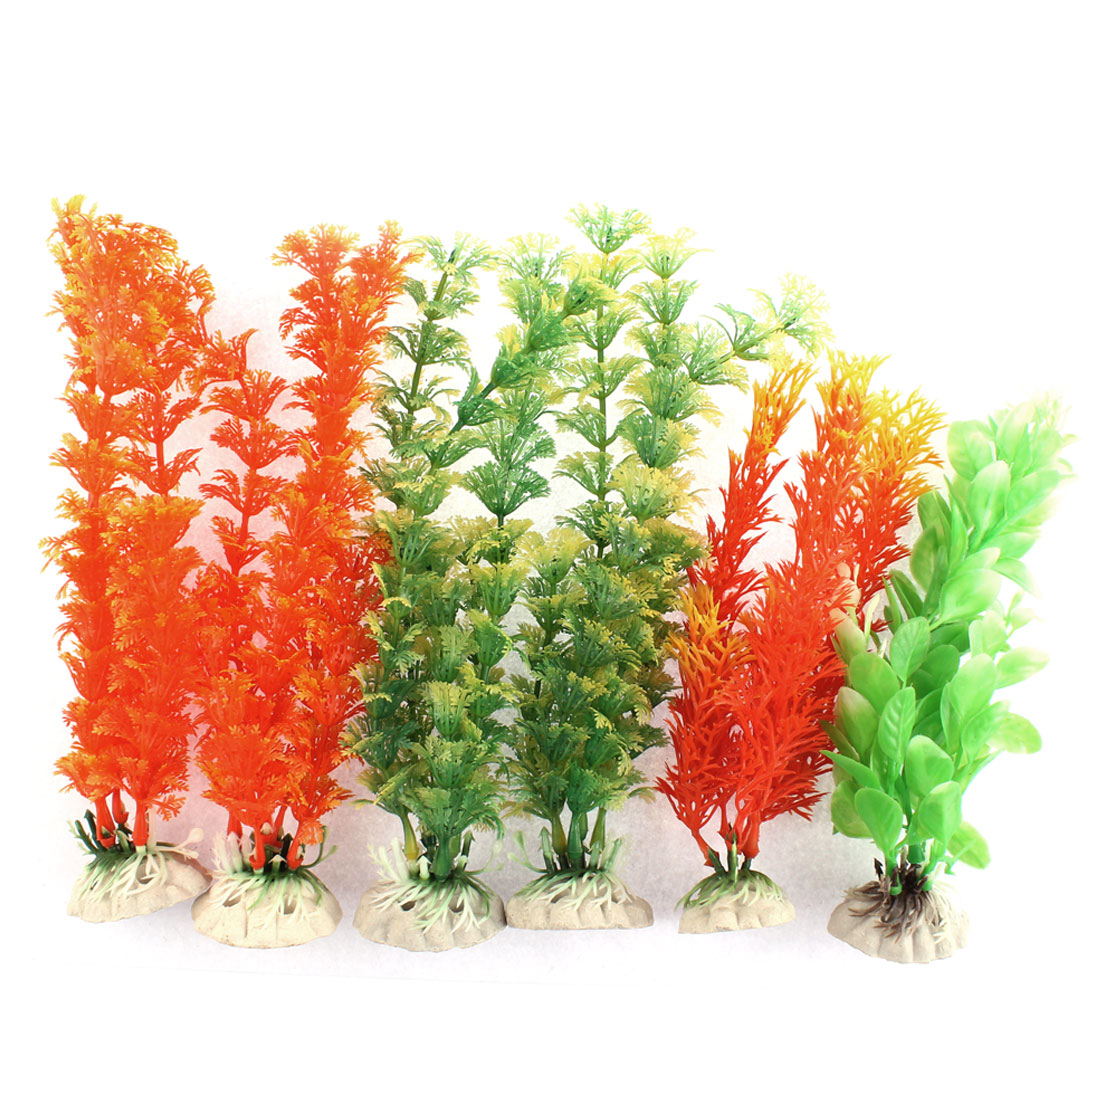 Aquarium Aquascaping Plastic Artificial Water Plant Decor 6 in 1